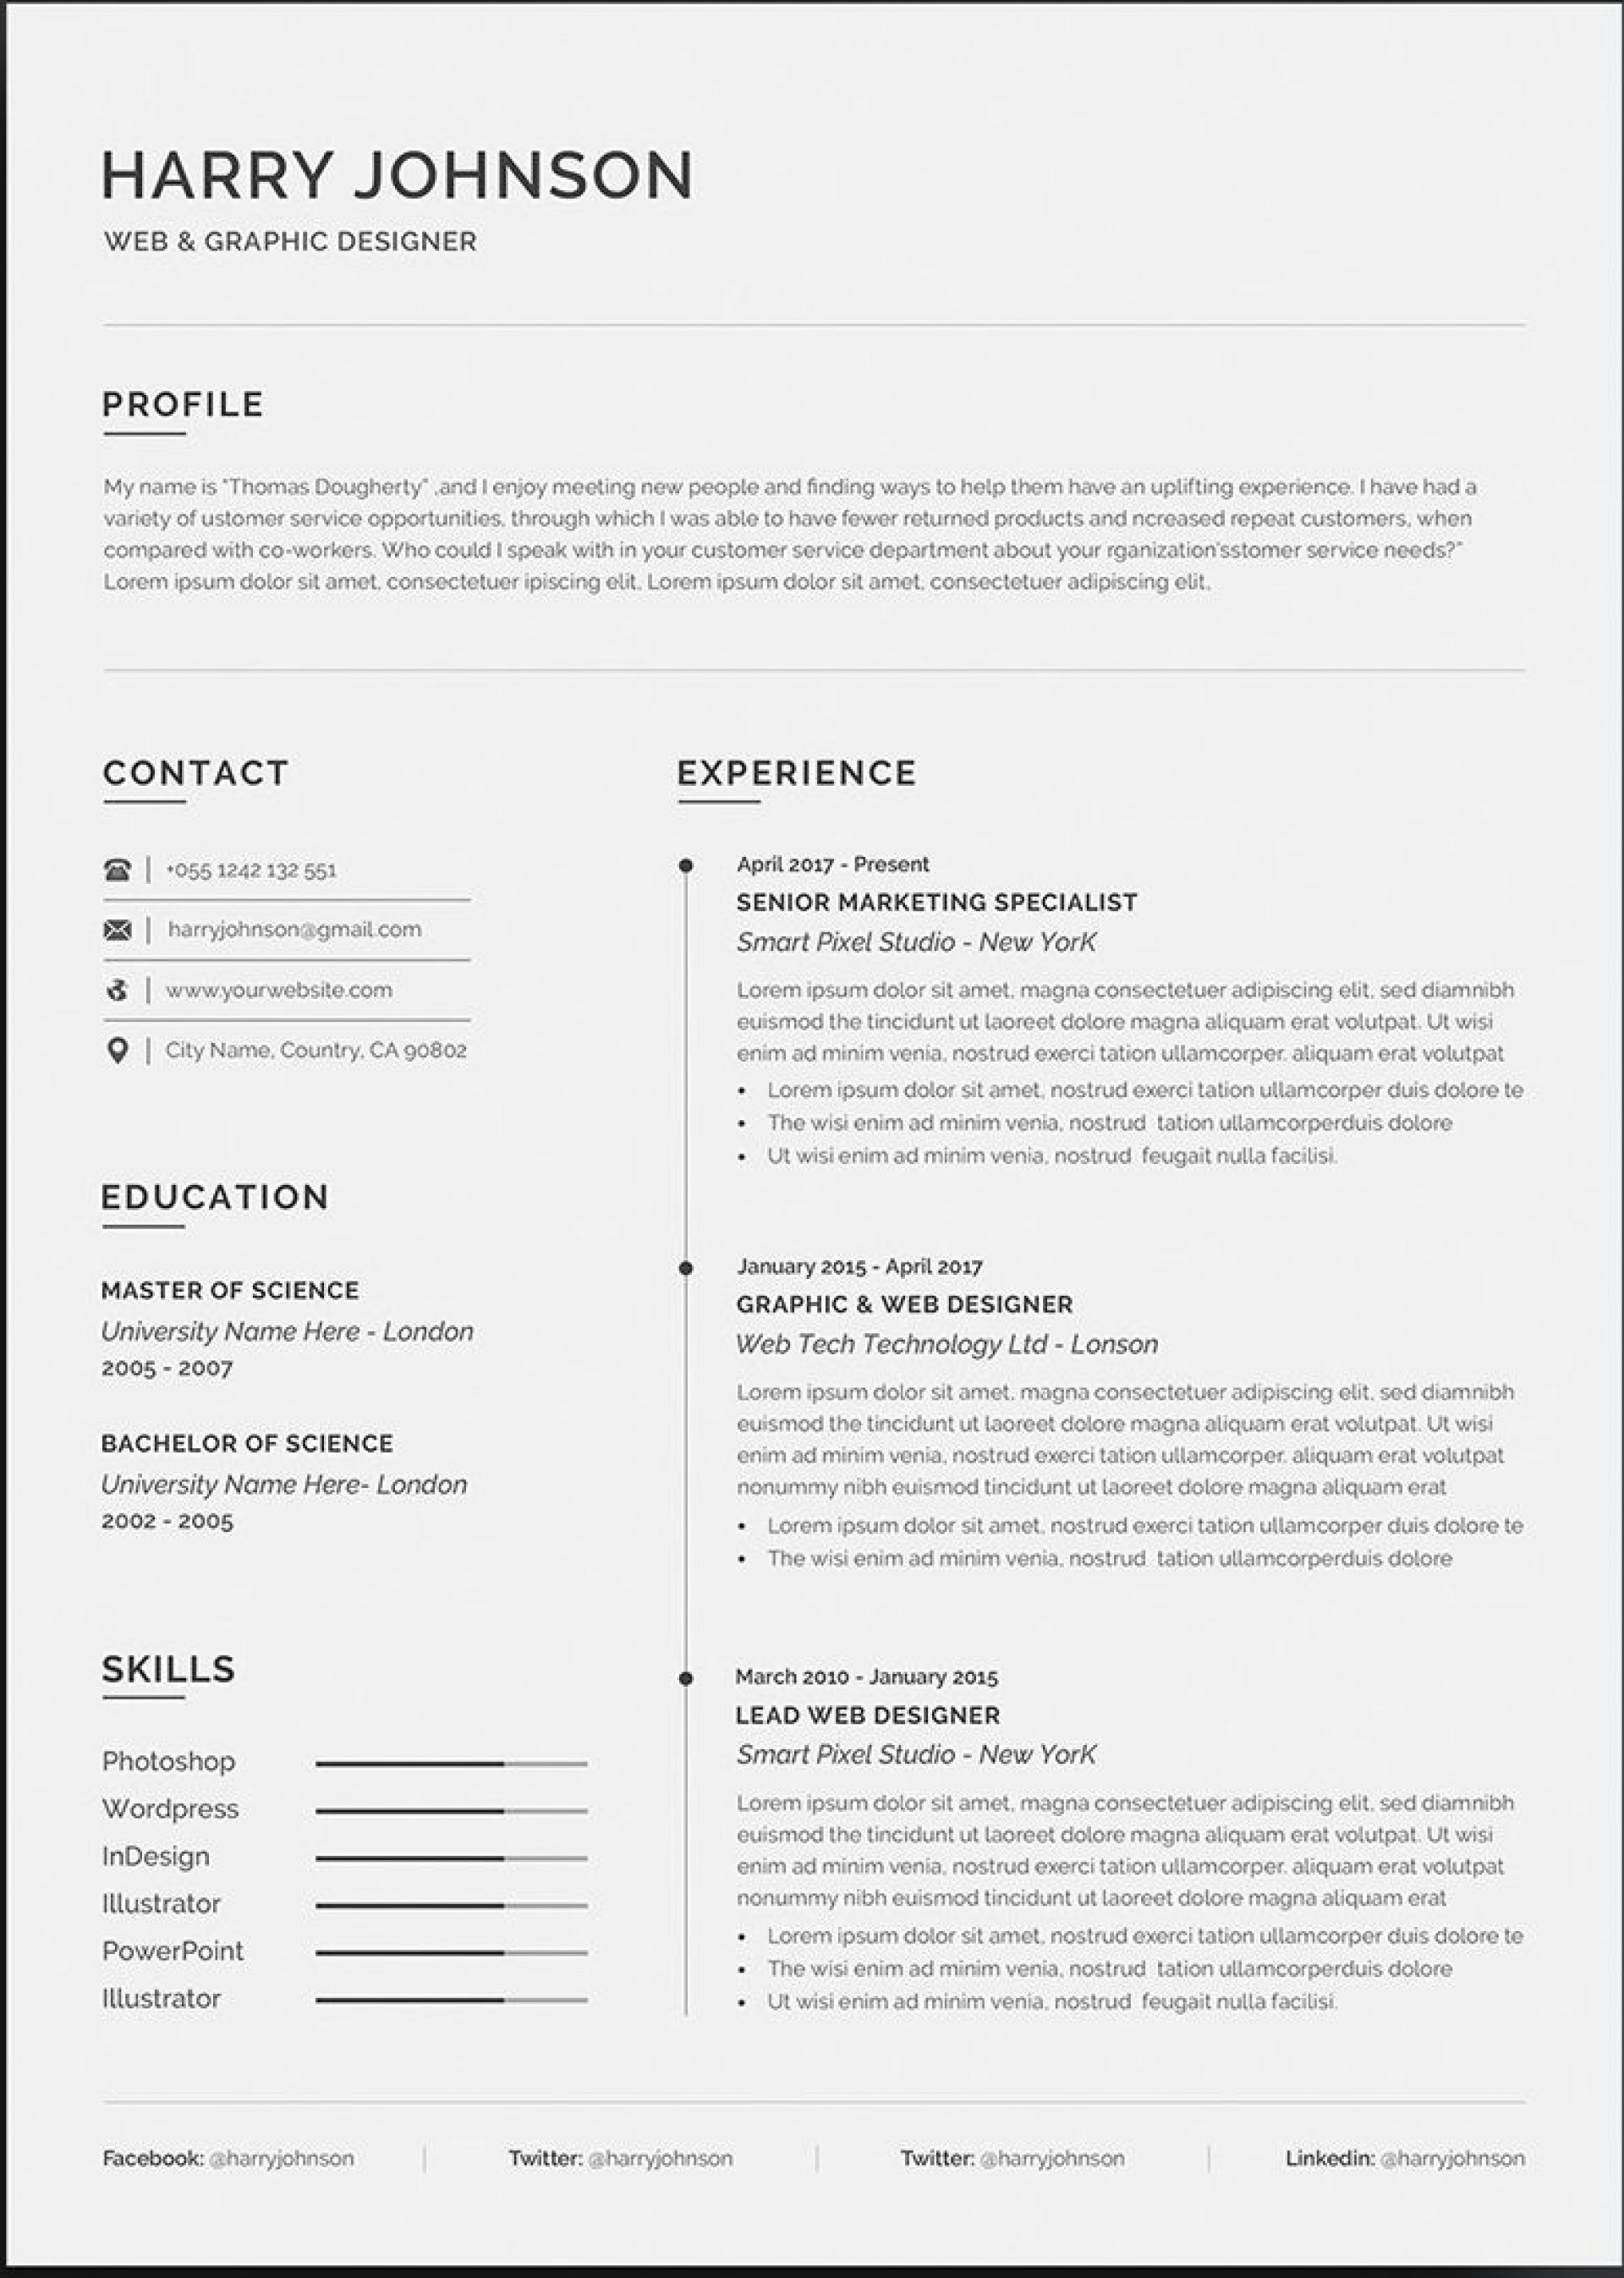 003 Striking Professional Resume Template Word High Definition  Microsoft Download Free 2010 20191920